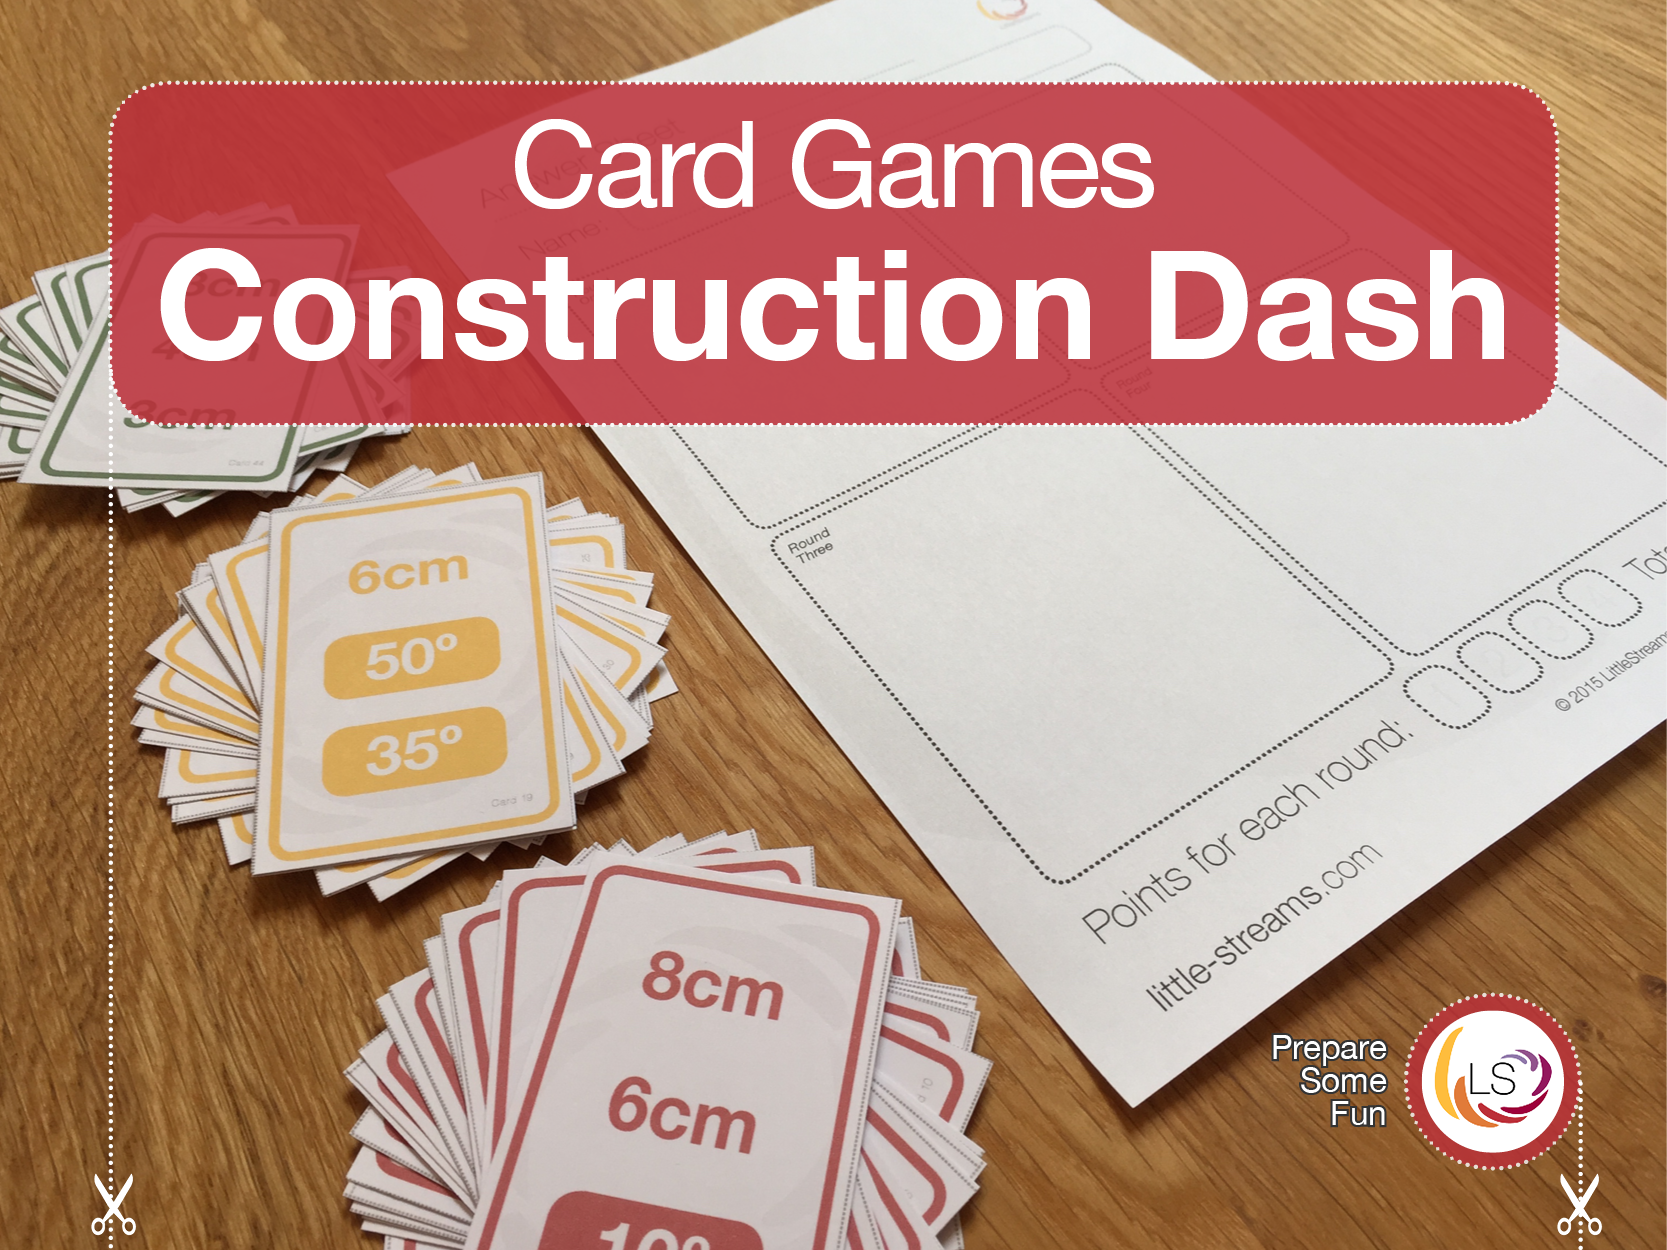 This is a quickfire and competitive card game that makes